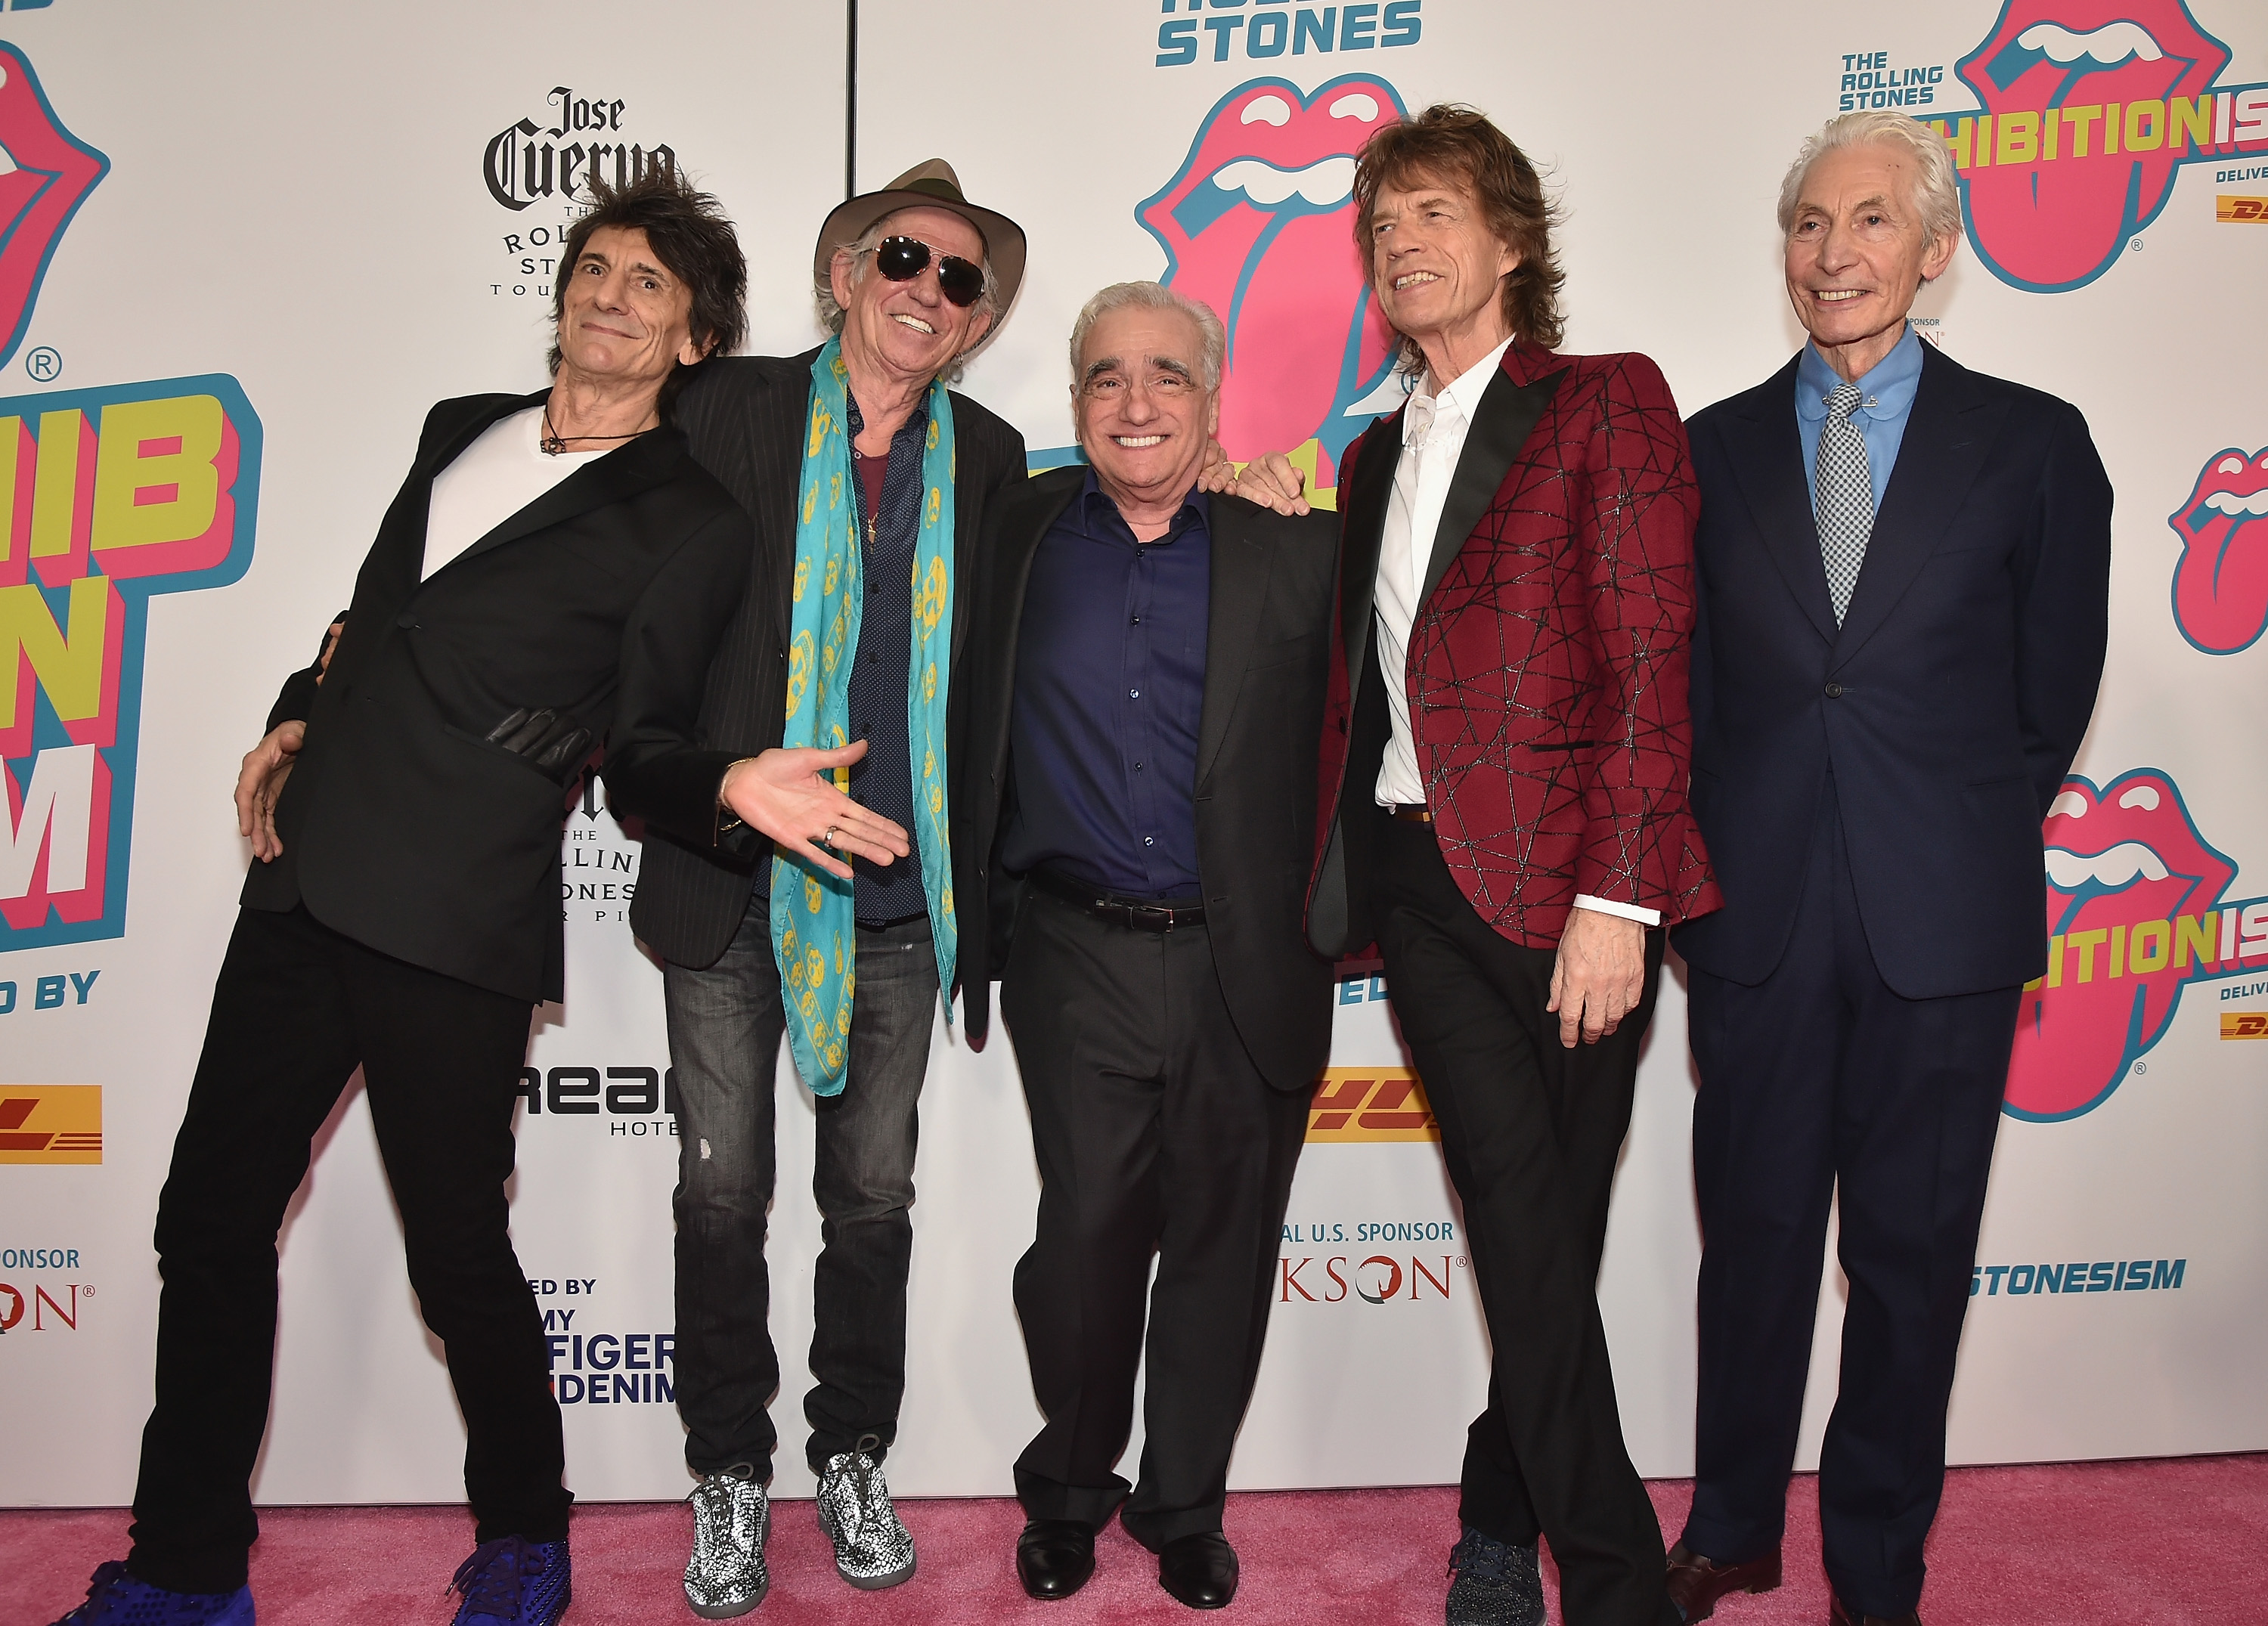 NEW YORK, NY - NOVEMBER 15:  (L-R) Ronnie Wood, Keith Richards, director Martin Scorsese, Mick Jagger, and Charlie Watts attend The Rolling Stones celebrate the North American debut of Exhibitionism at Industria in the West Village on November 15, 2016 in New York City.  (Photo by Theo Wargo/Getty Images for The Rolling Stones)